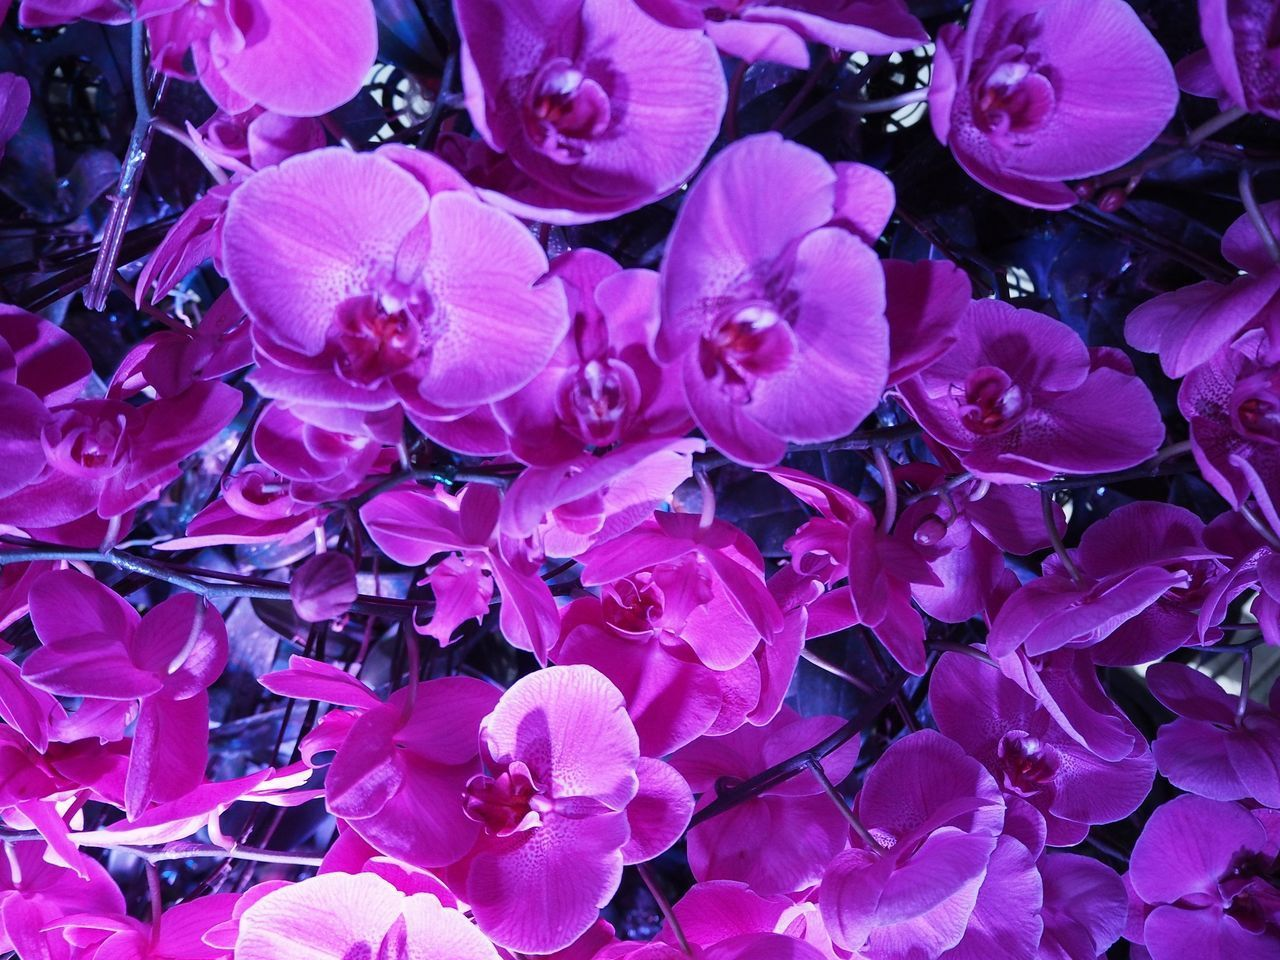 flower, flowering plant, freshness, beauty in nature, petal, vulnerability, plant, fragility, close-up, full frame, growth, inflorescence, pink color, flower head, no people, backgrounds, nature, purple, day, outdoors, lilac, pollen, bunch of flowers